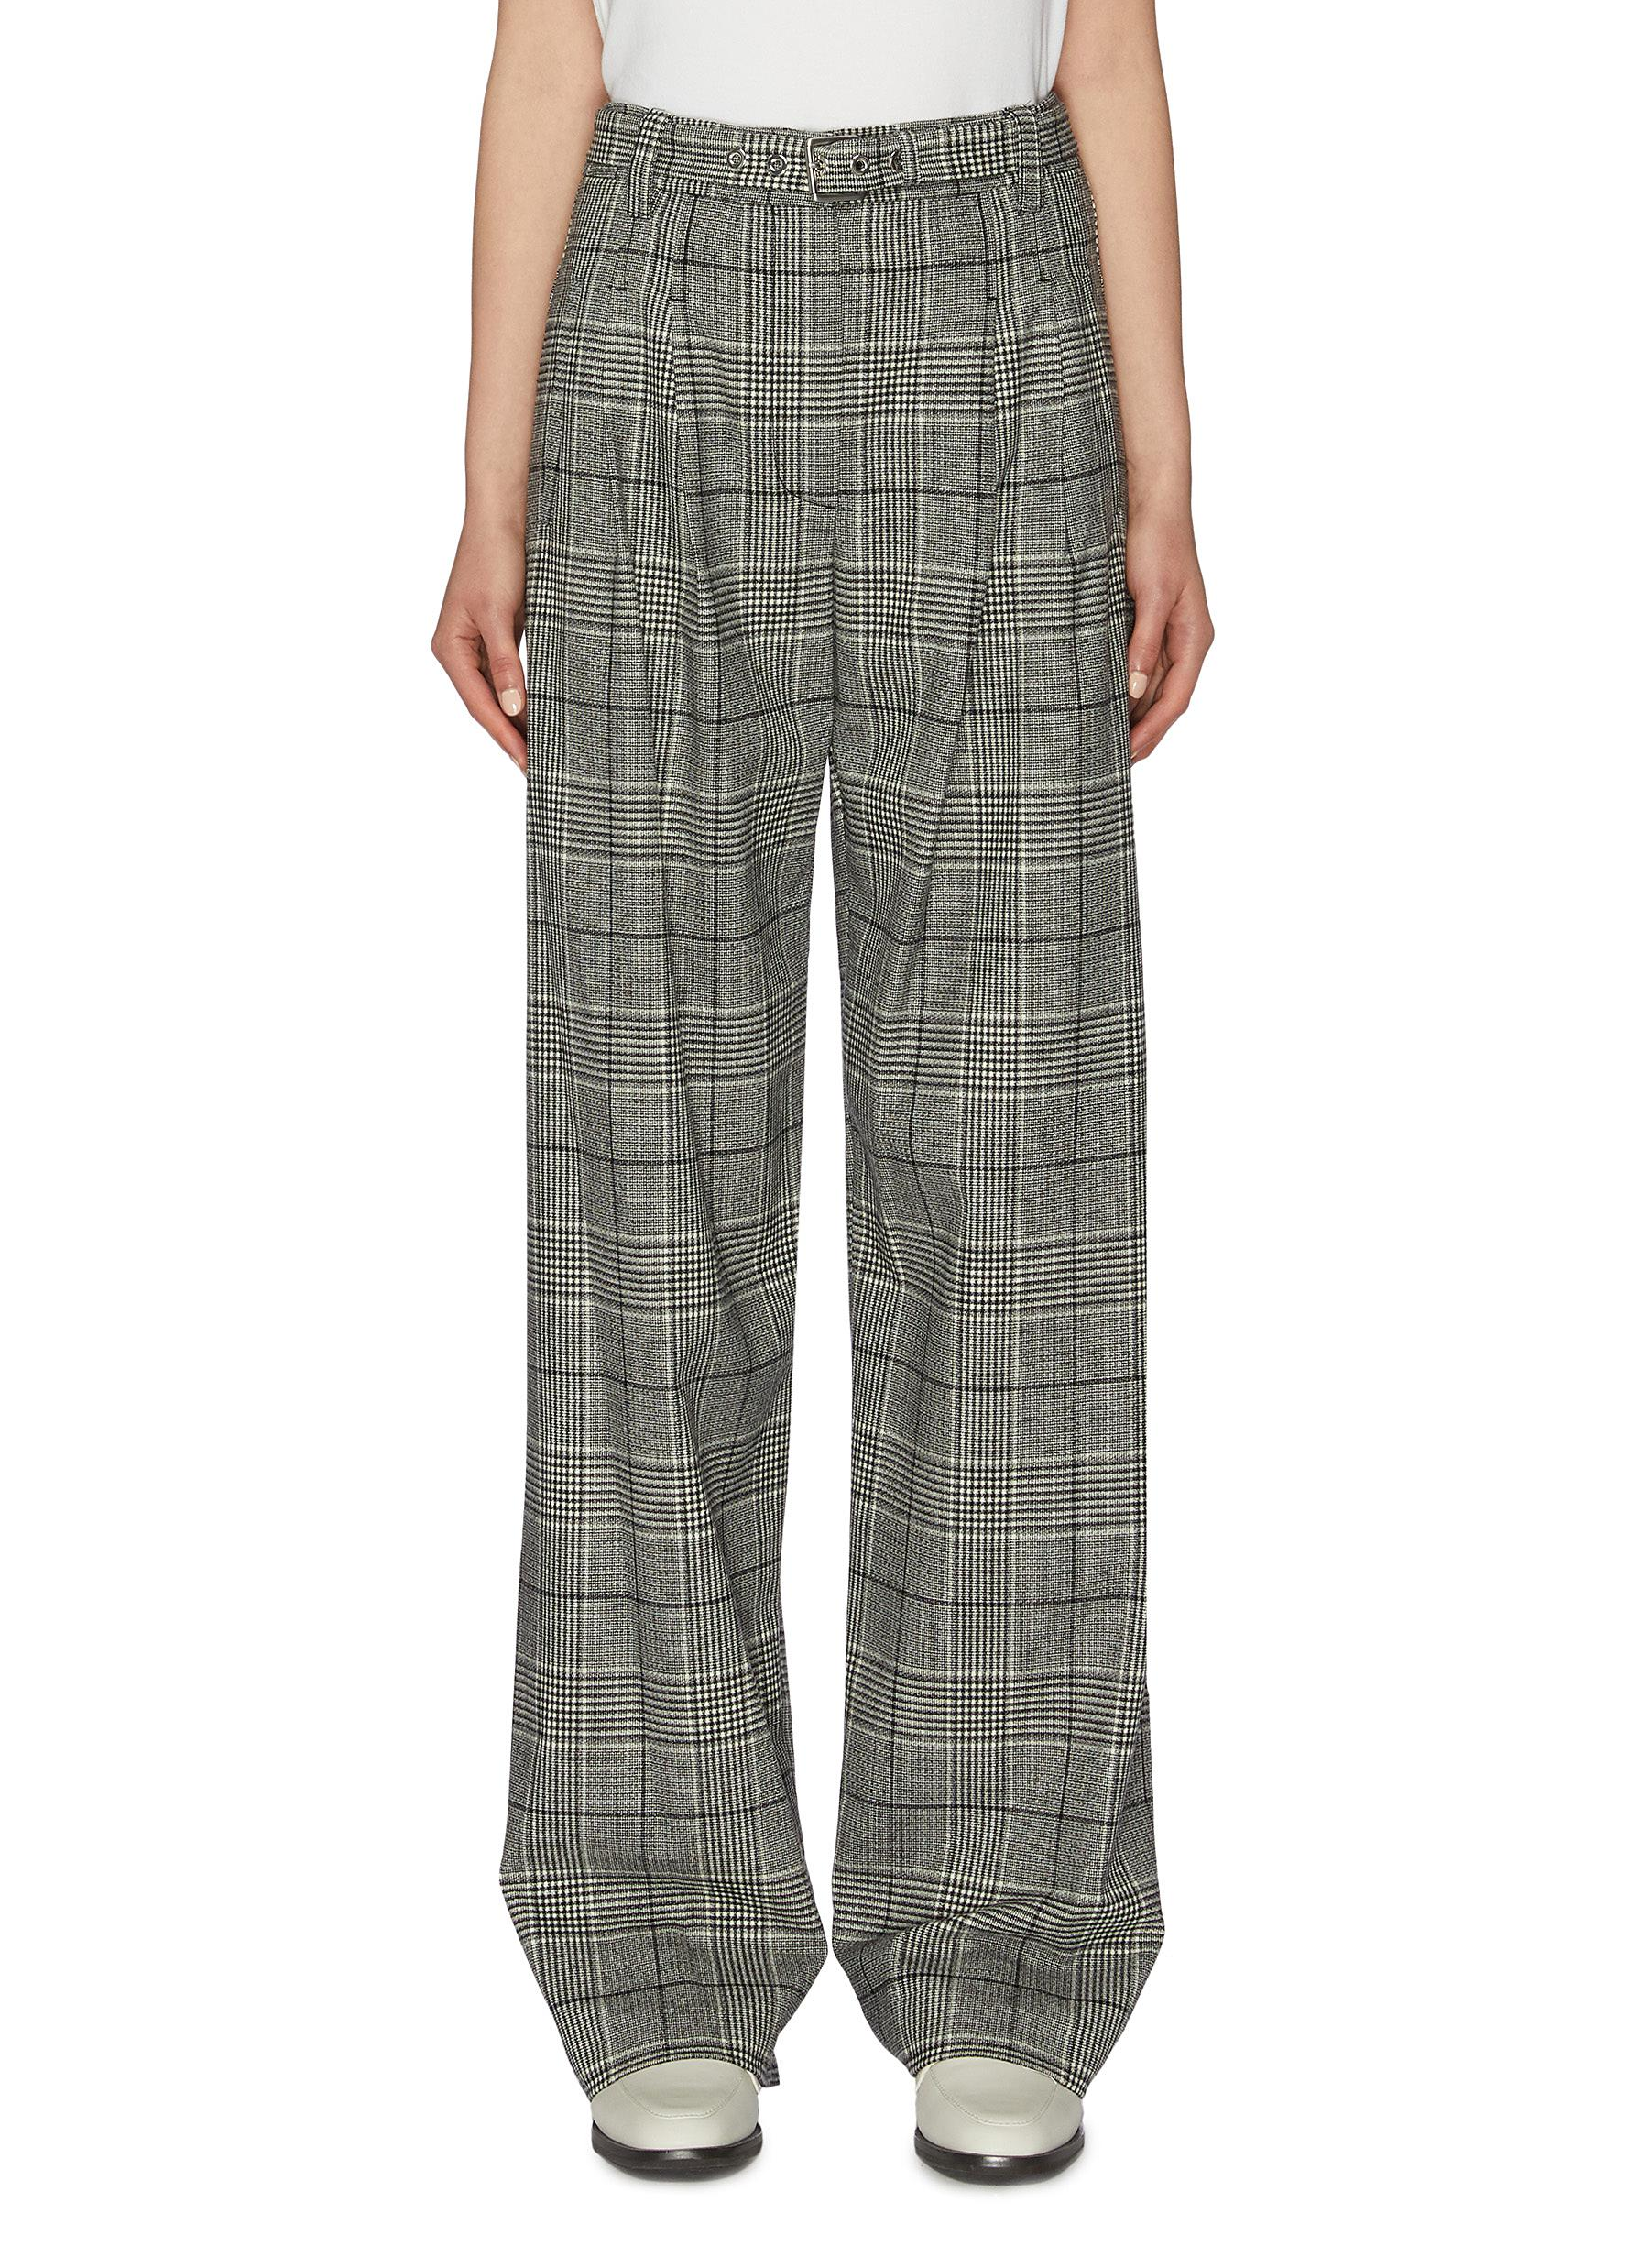 Belted check plaid wide leg suiting pants by Proenza Schouler